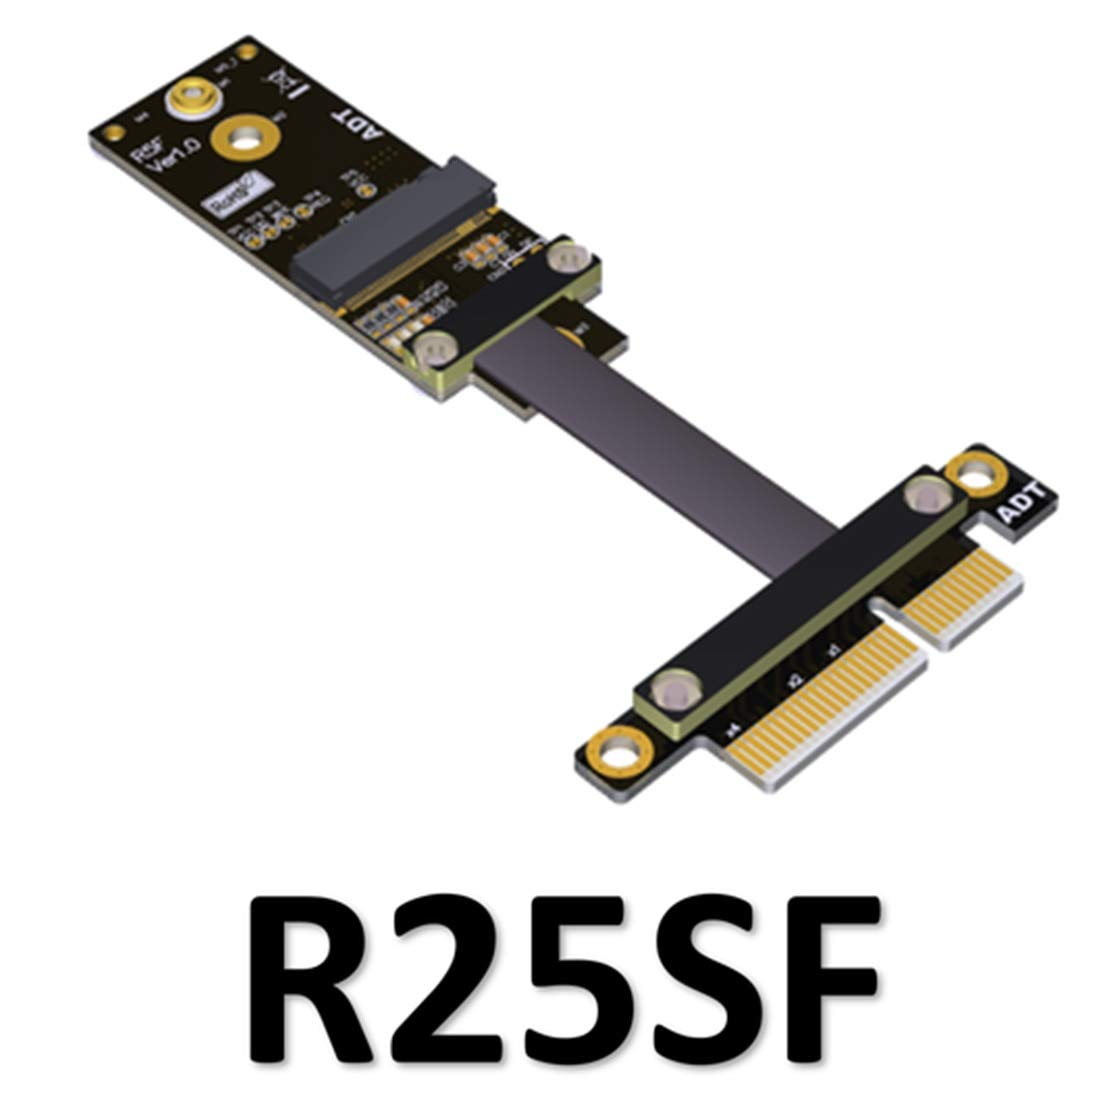 40cm Key WiFi Adapter Card Extension Riser Cable PCI-Express M2 A E Key Conversion Adapter ADT-Link PCIe x4 to M.2 A.E